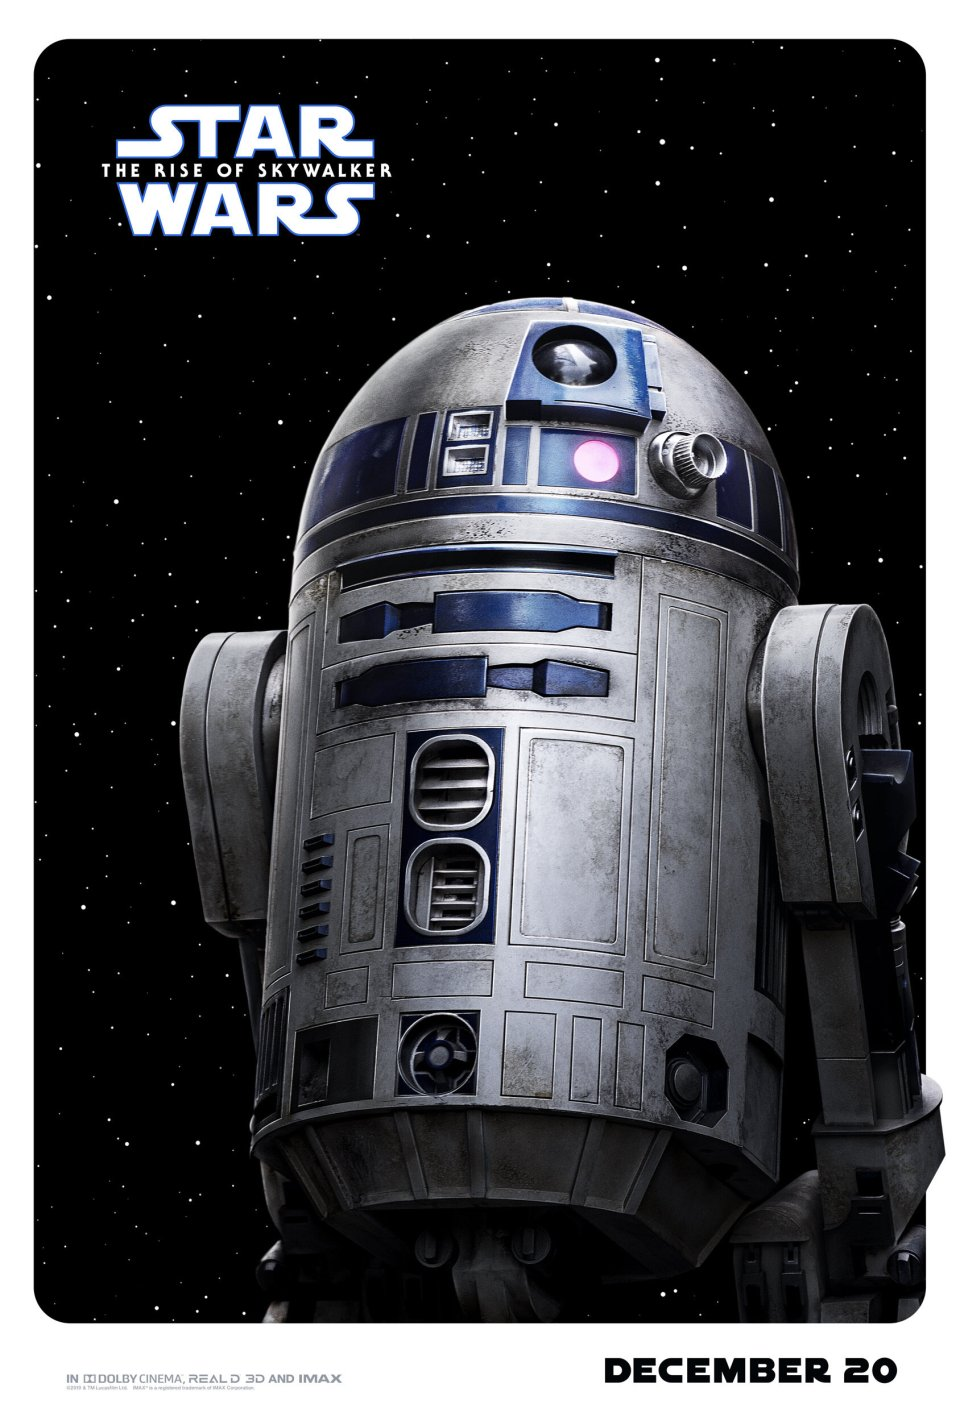 11-character-posters-released-for-star-wars-the-rise-of-skywalker12.JPG